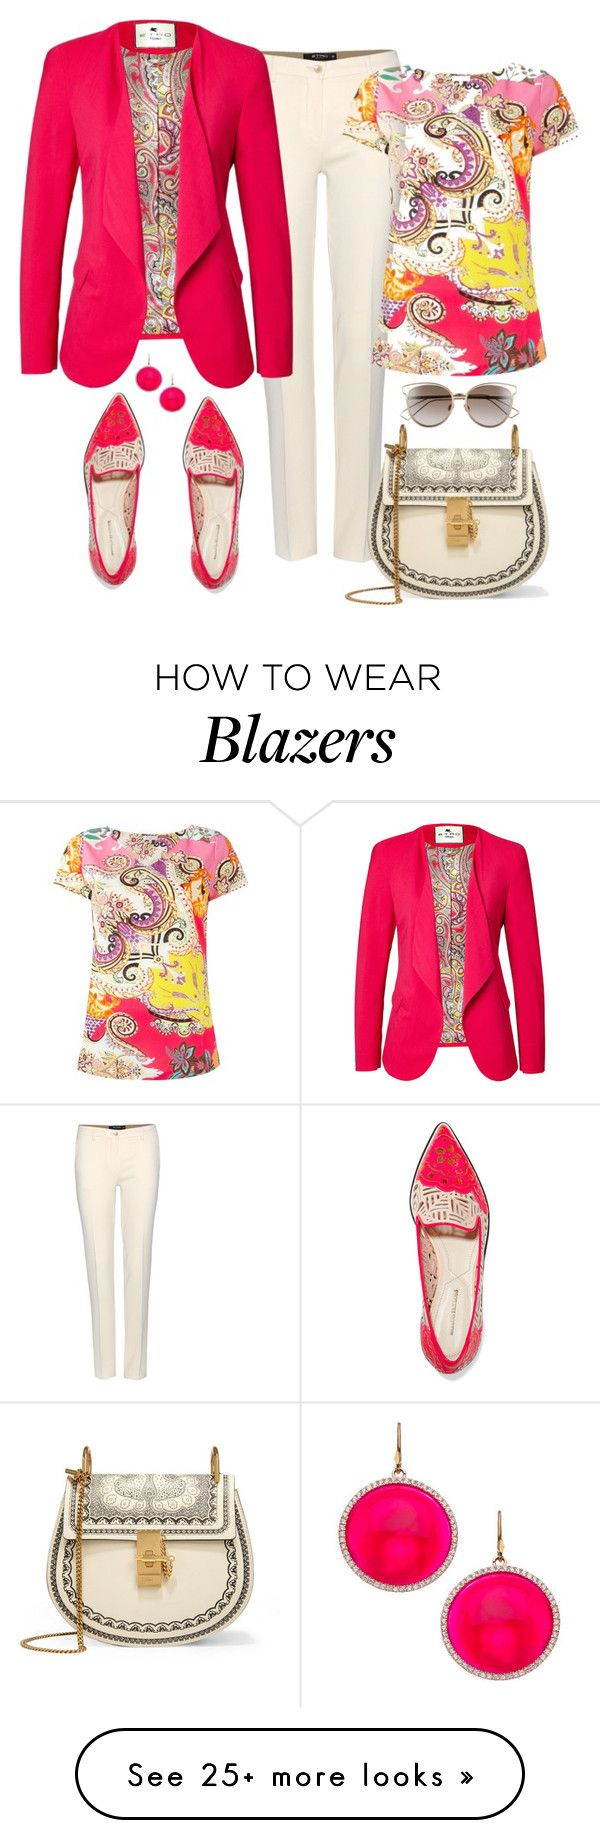 """Etro Carnation Pink Blazer & Top Look"" by romaboots-1 on Polyvore featuring Etro, Chloé, Nicholas Kirkwood, Christian Dior and Madison Precious Jewels"